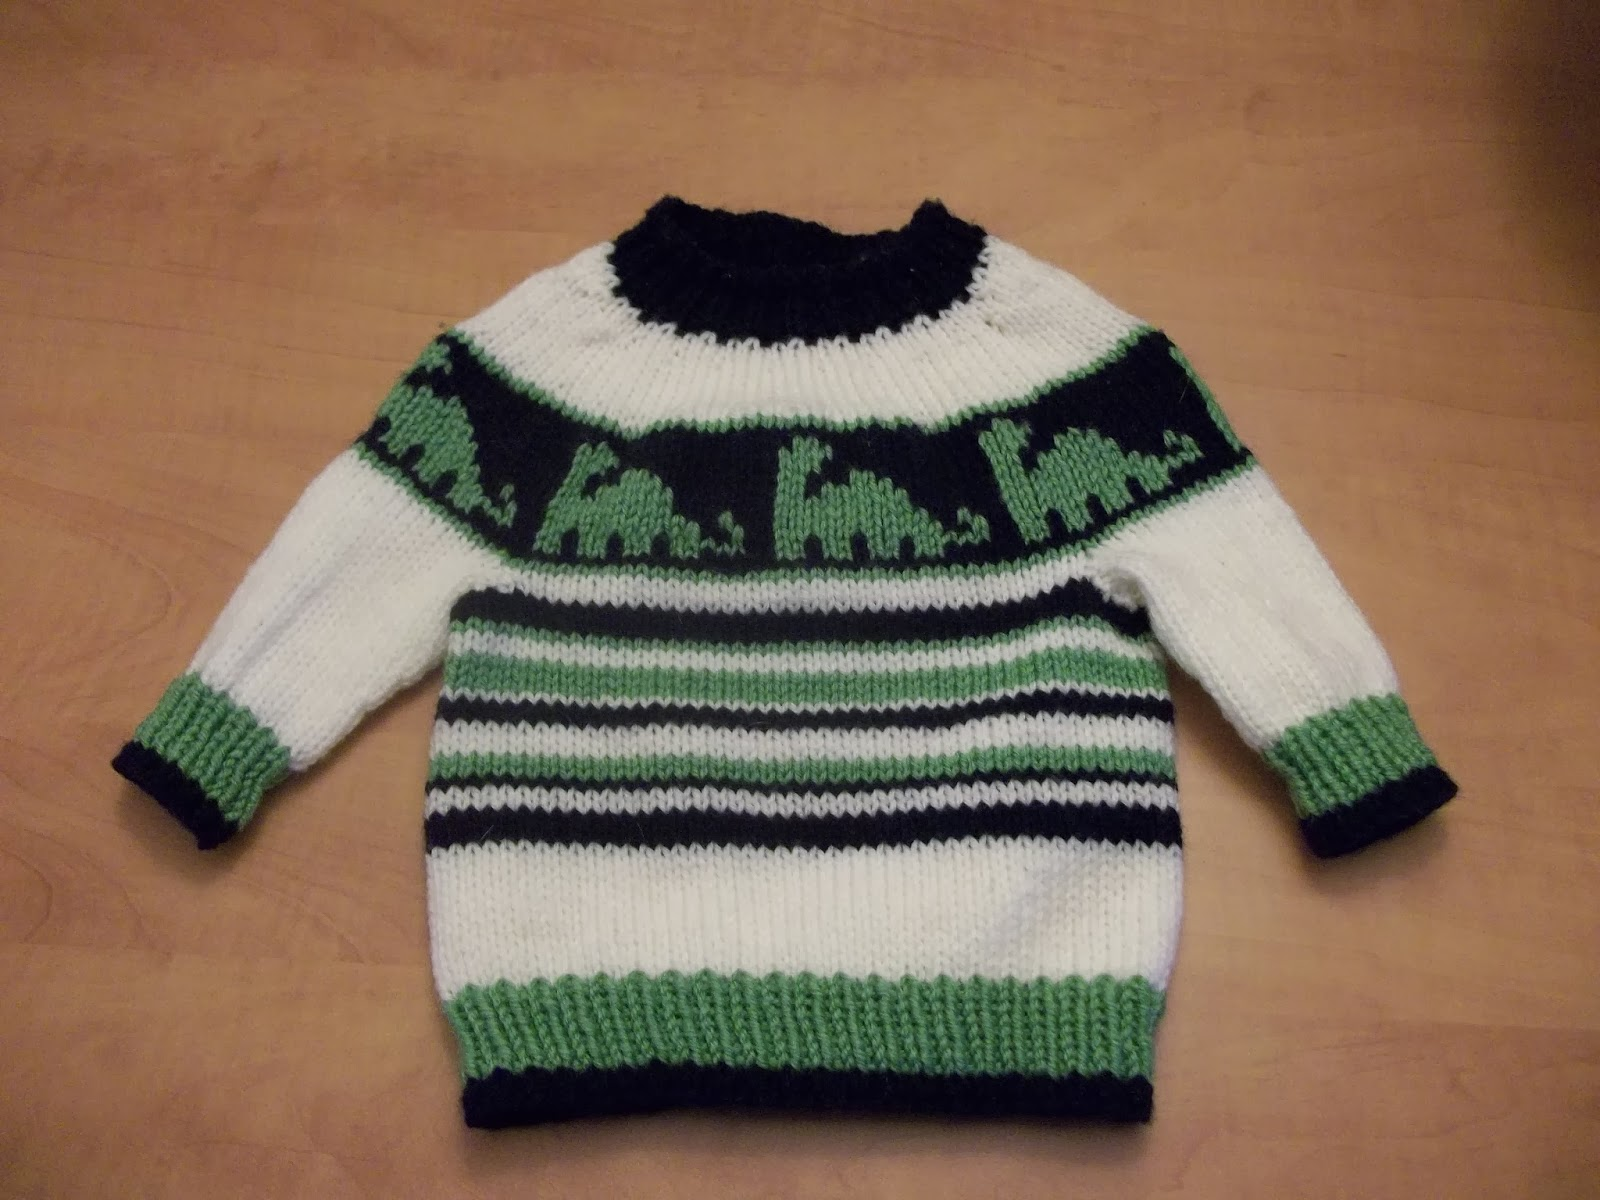 Knitting Pattern For Dinosaur Sweater : The Knitting Needle and the Damage Done: 12 Months, 12 ...